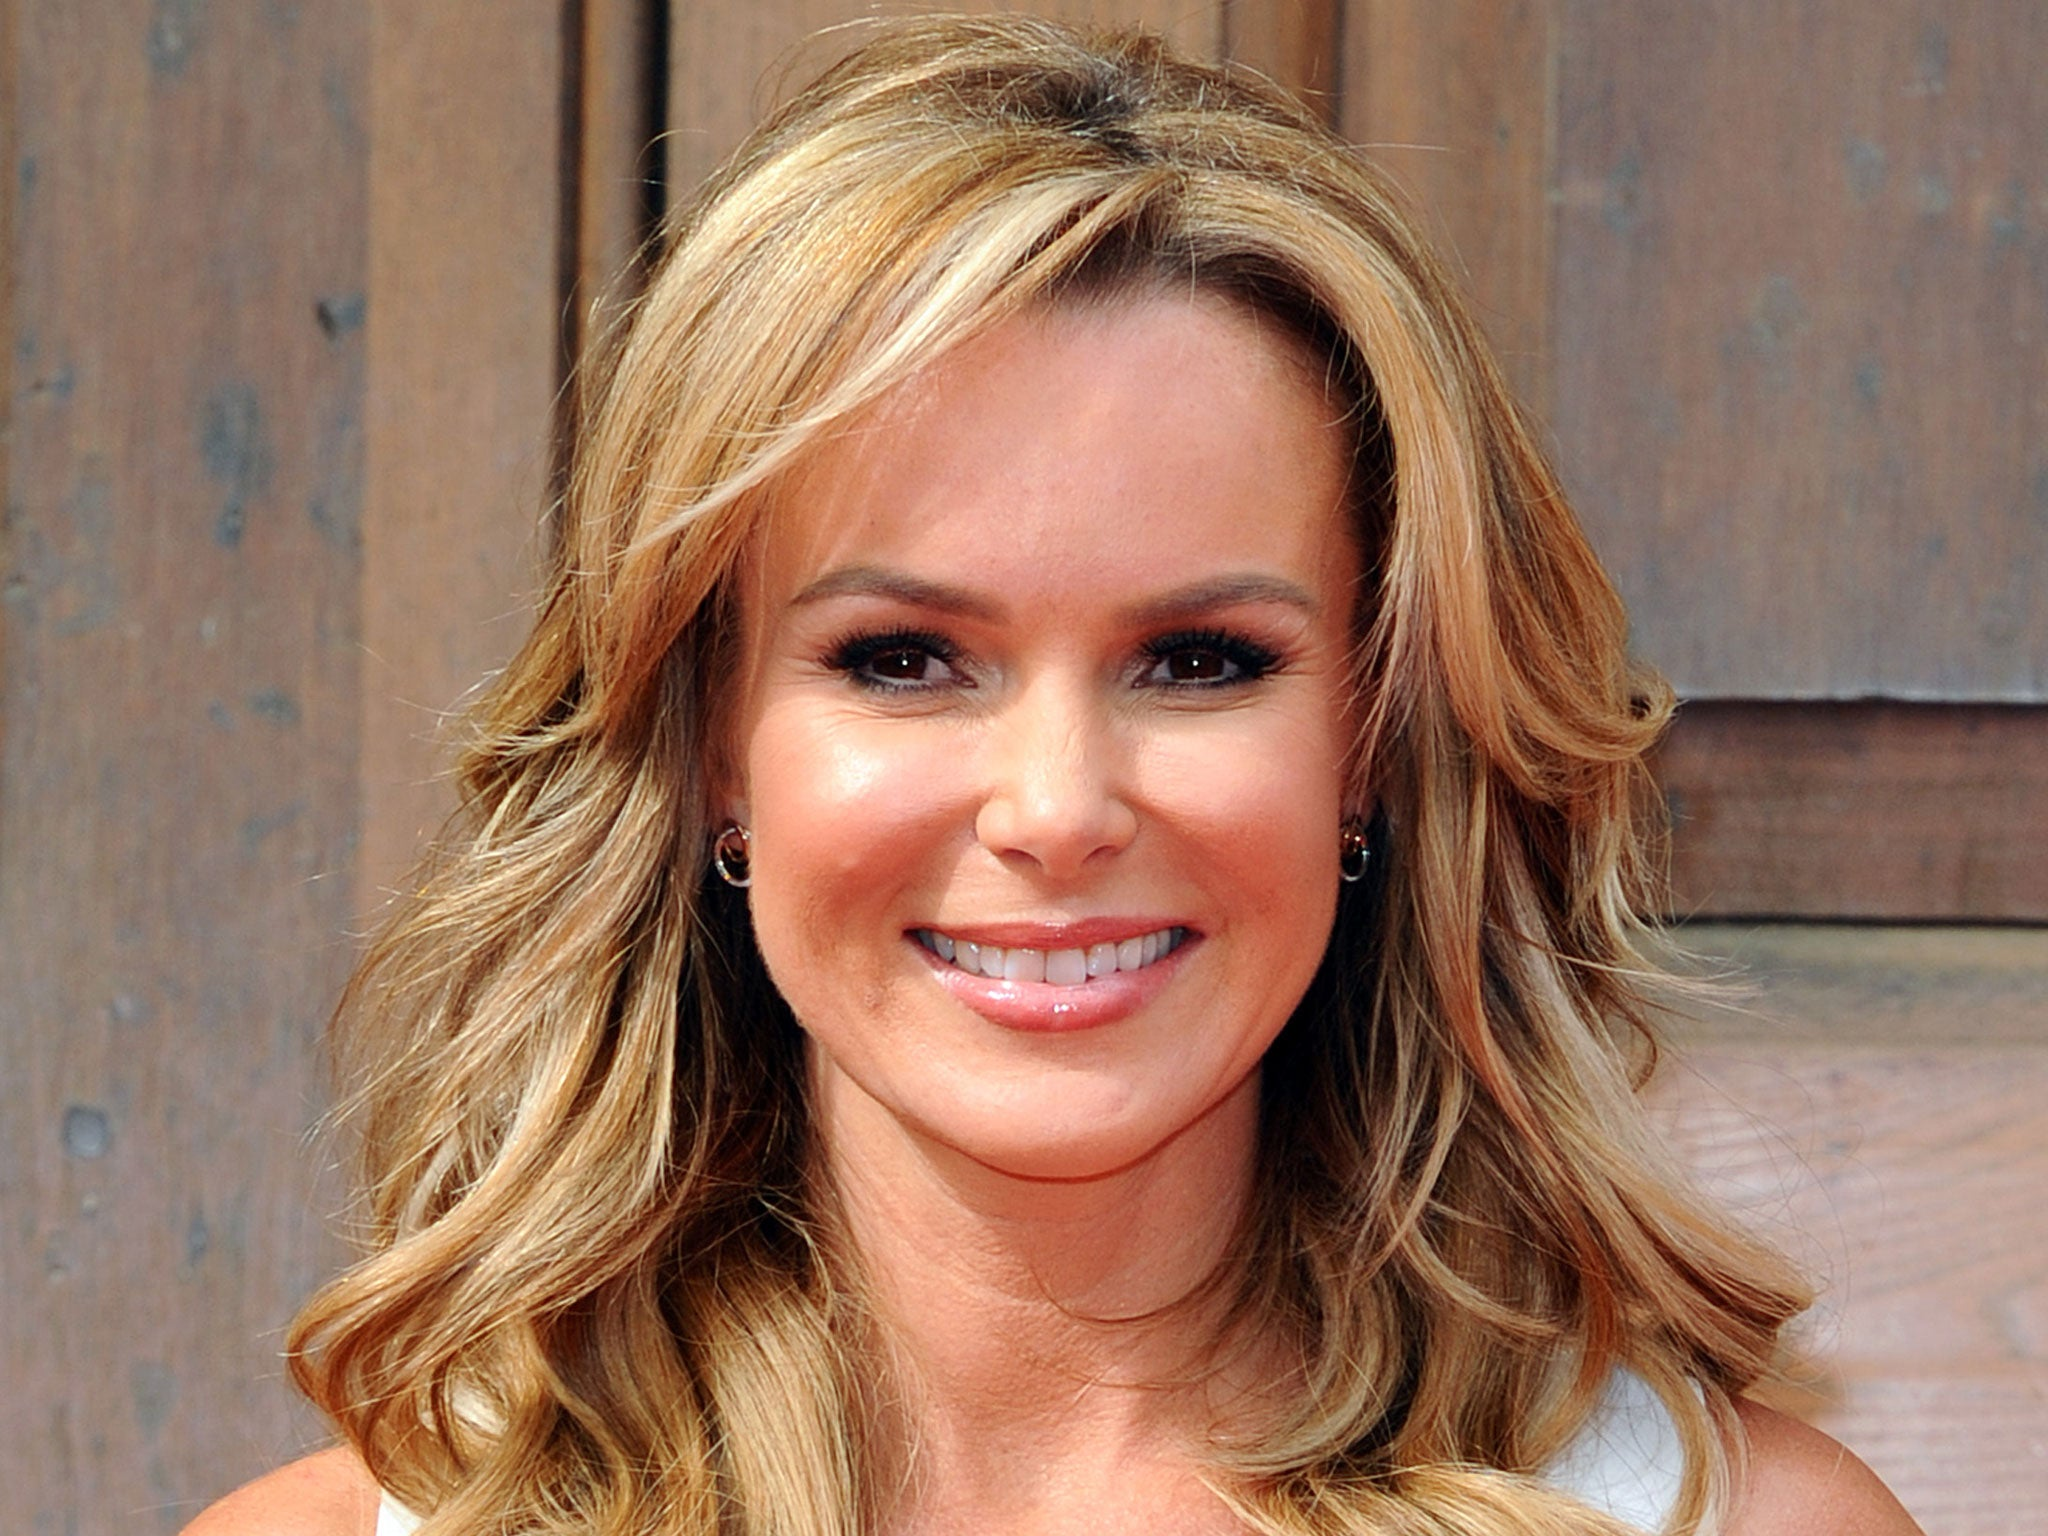 Amanda Holden Sex Video britain's got talent: amanda holden's dress led to 216